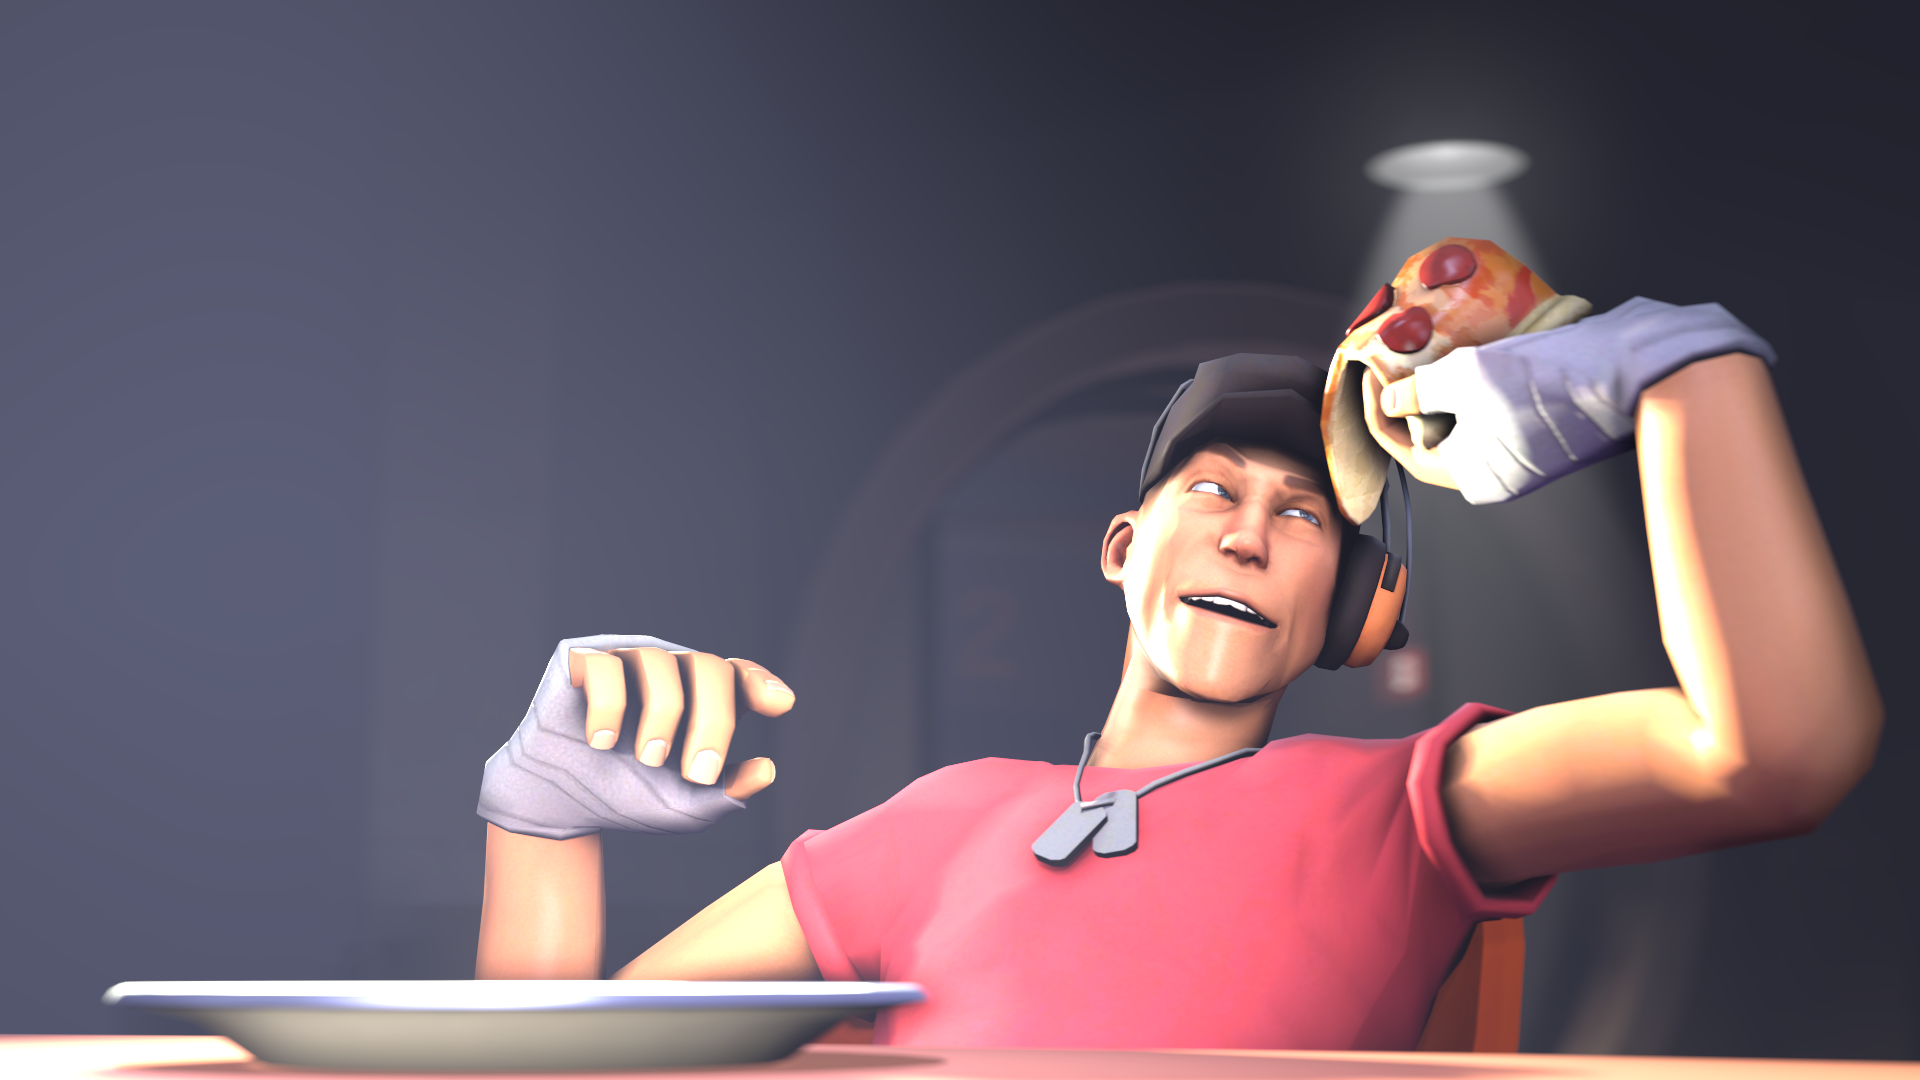 Literally Just A Picture Of Scout Eating A Pizza Games Teamfortress2 Steam Tf2 Steamnewrelease Gaming Valve Team Fortress 2 Scout Team Fortress